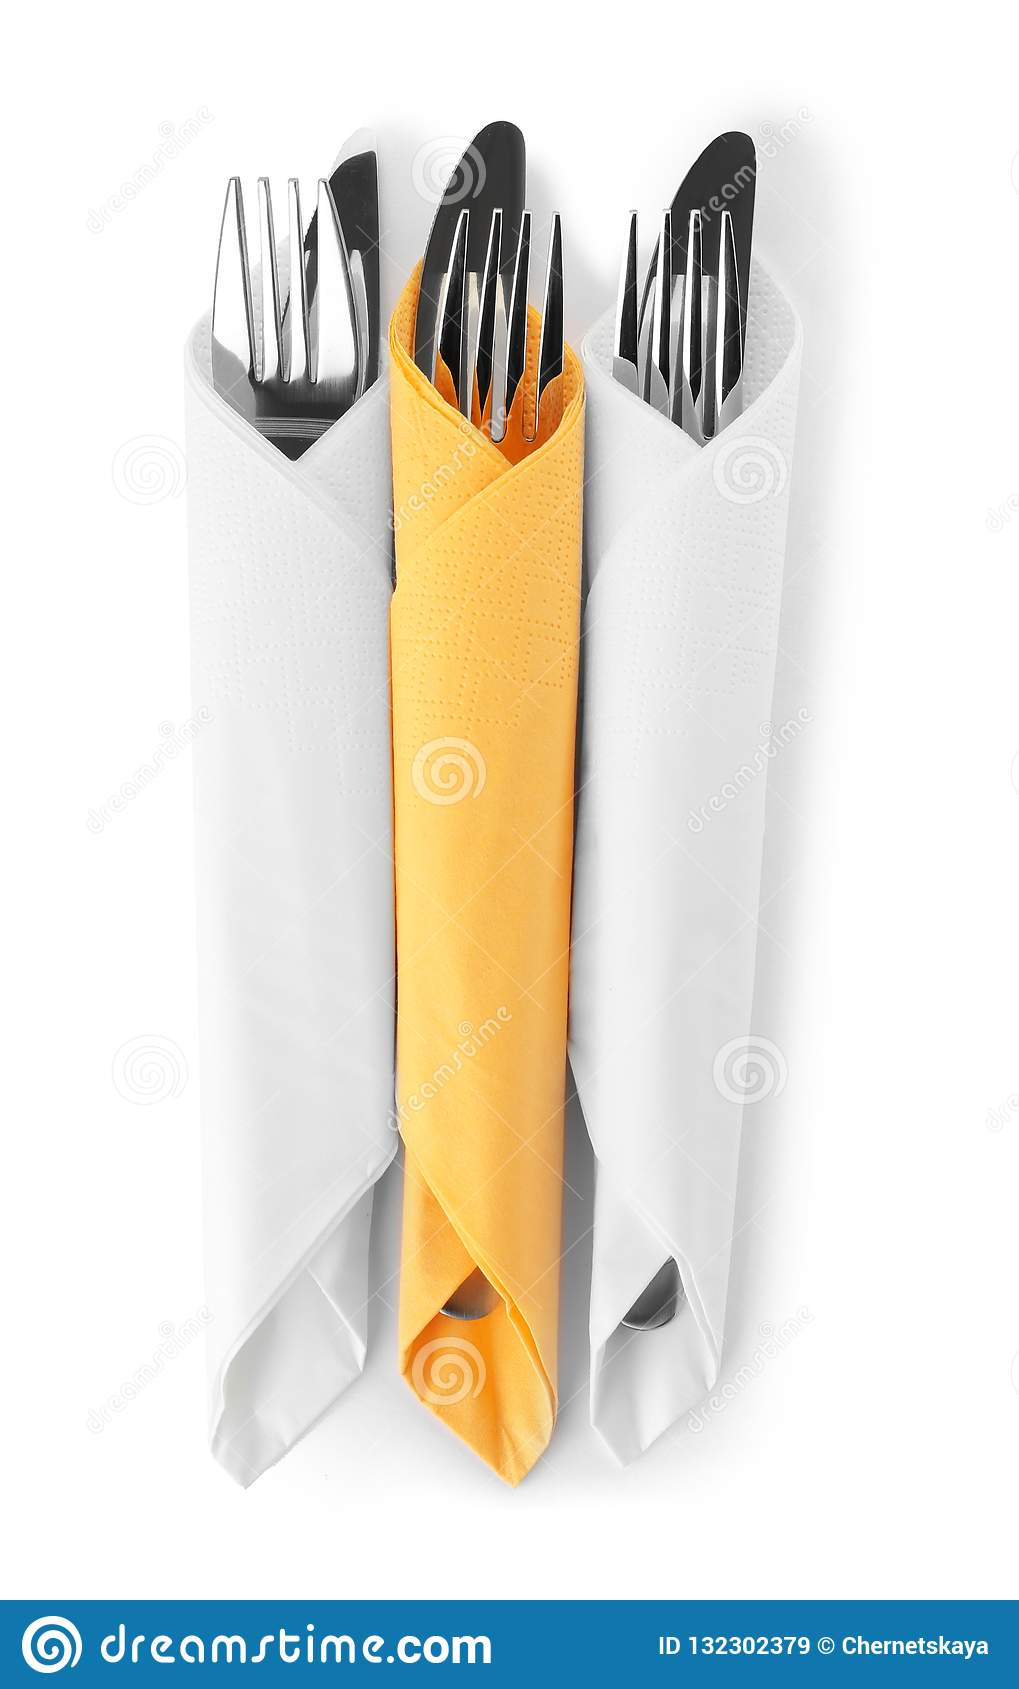 Cutlery Wrapped In Paper Napkins On White Background Stock Image Image Of Napkins Folded 132302379